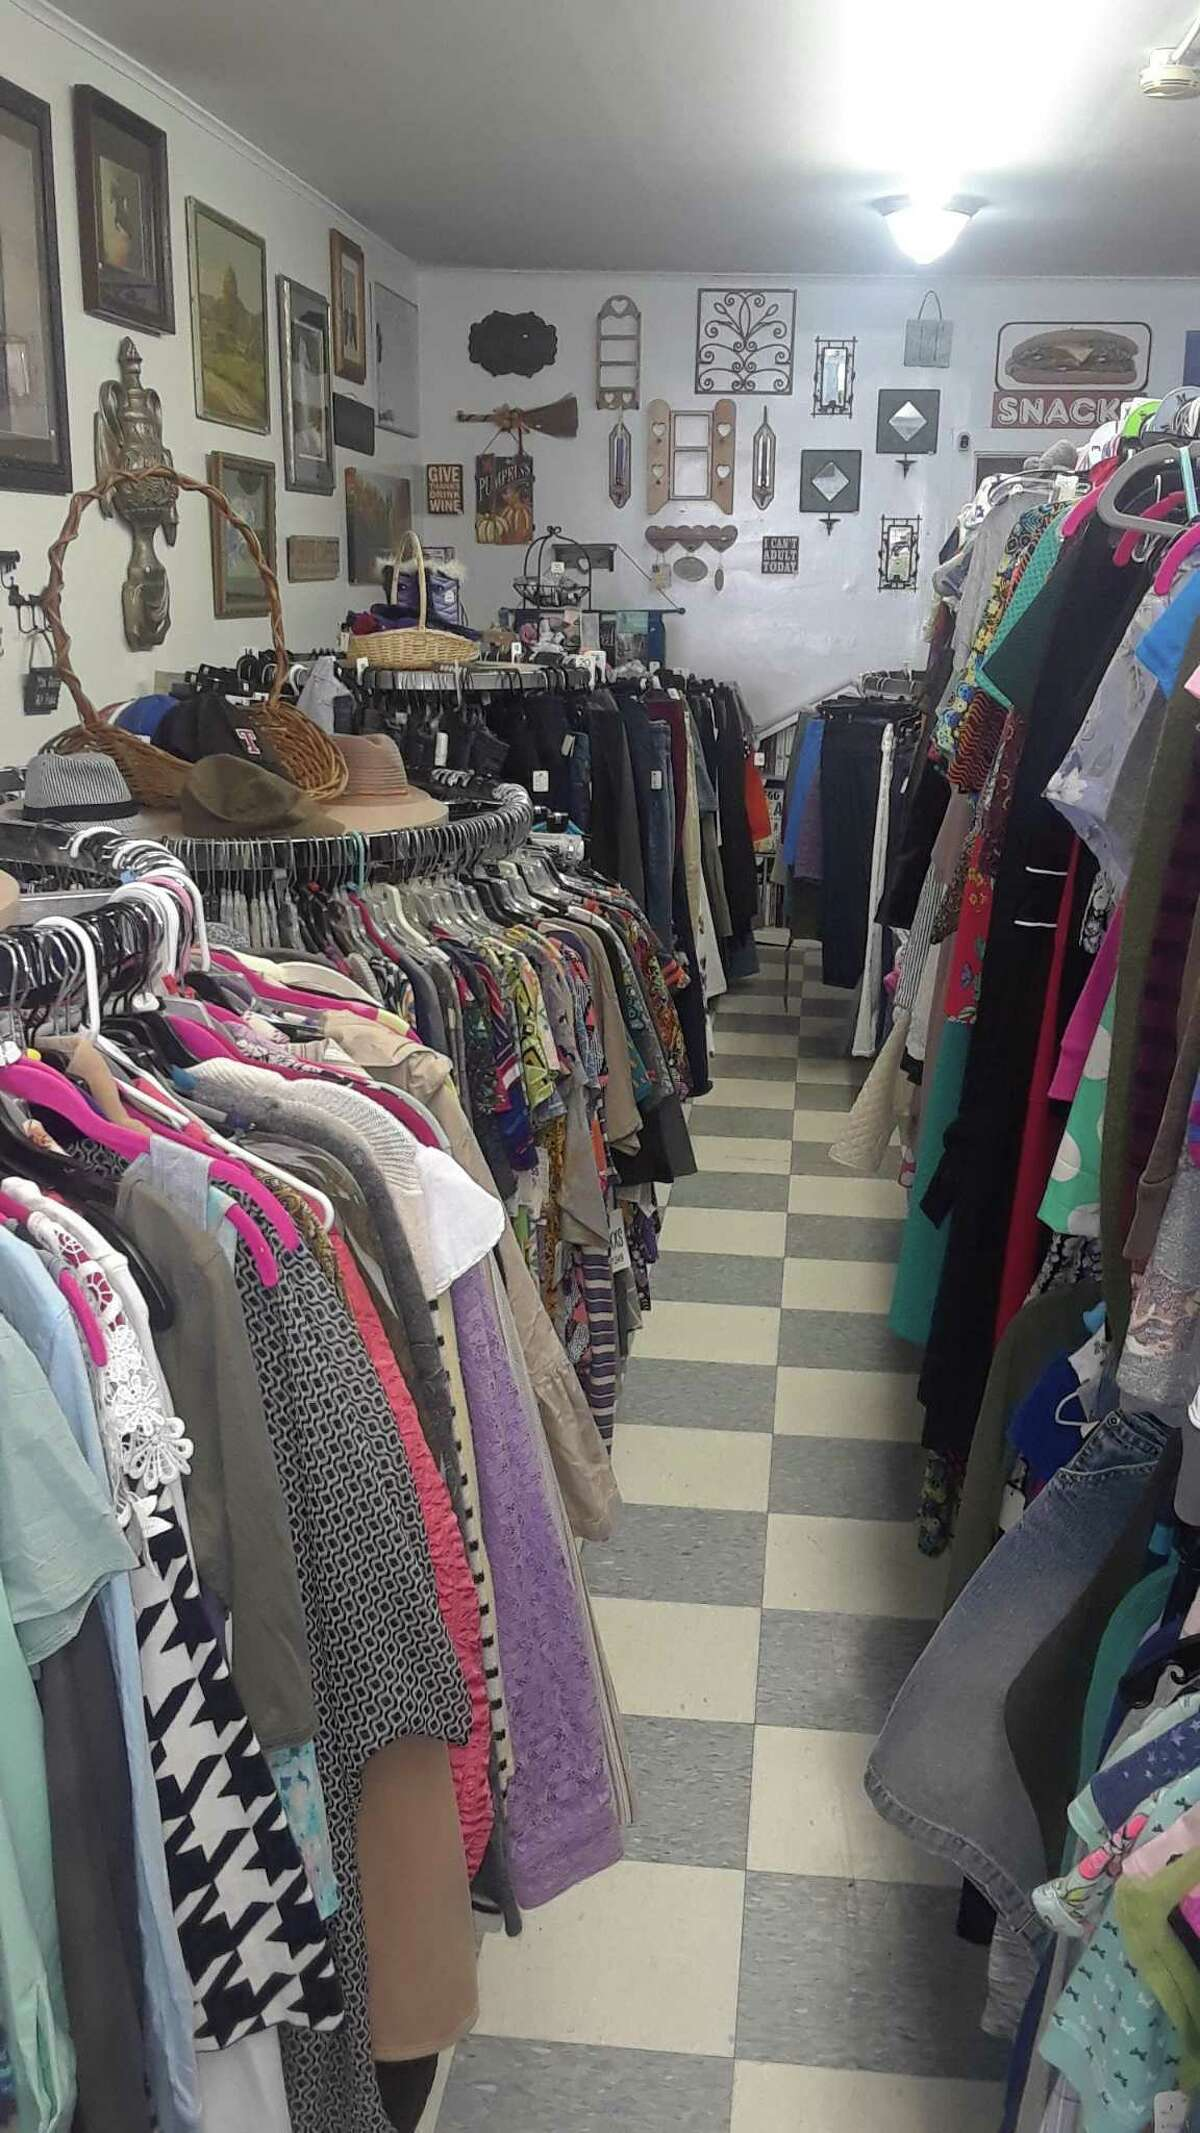 Clothing for women, men and children is displayed at The Goody Bag Variety and Consignment in Torrington, which opens Saturday on Main Street.